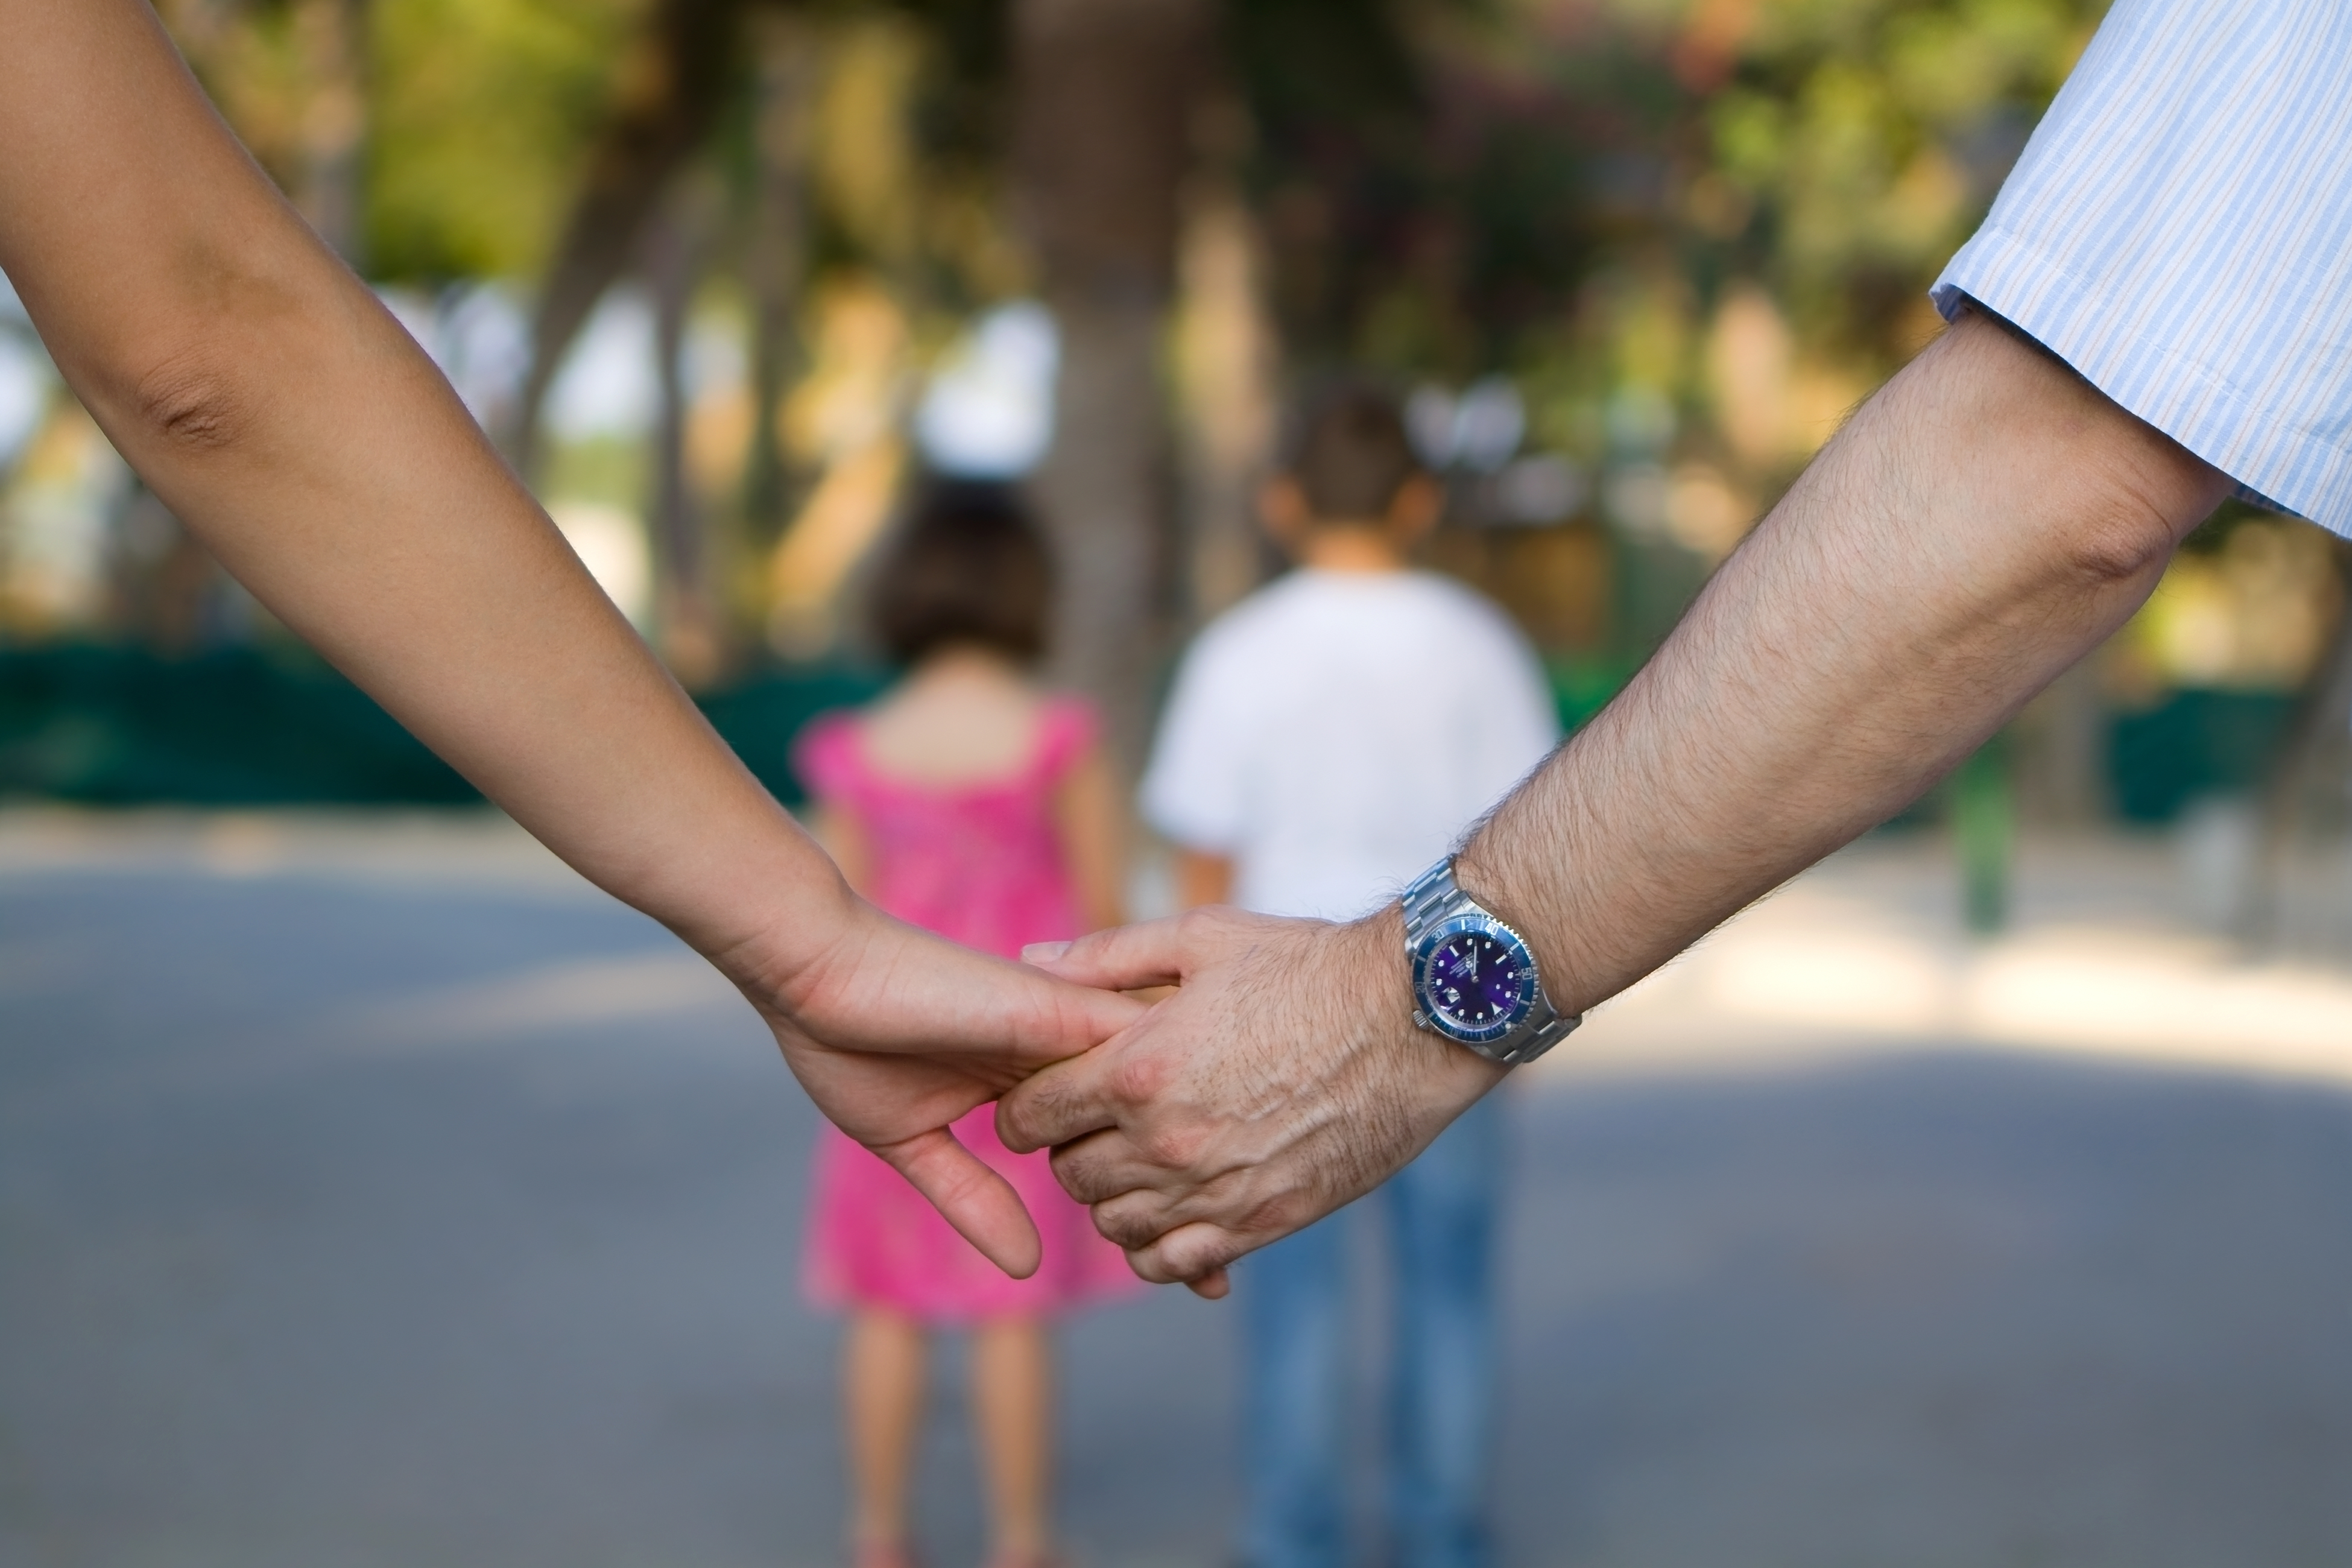 Making Time for Your Spouse